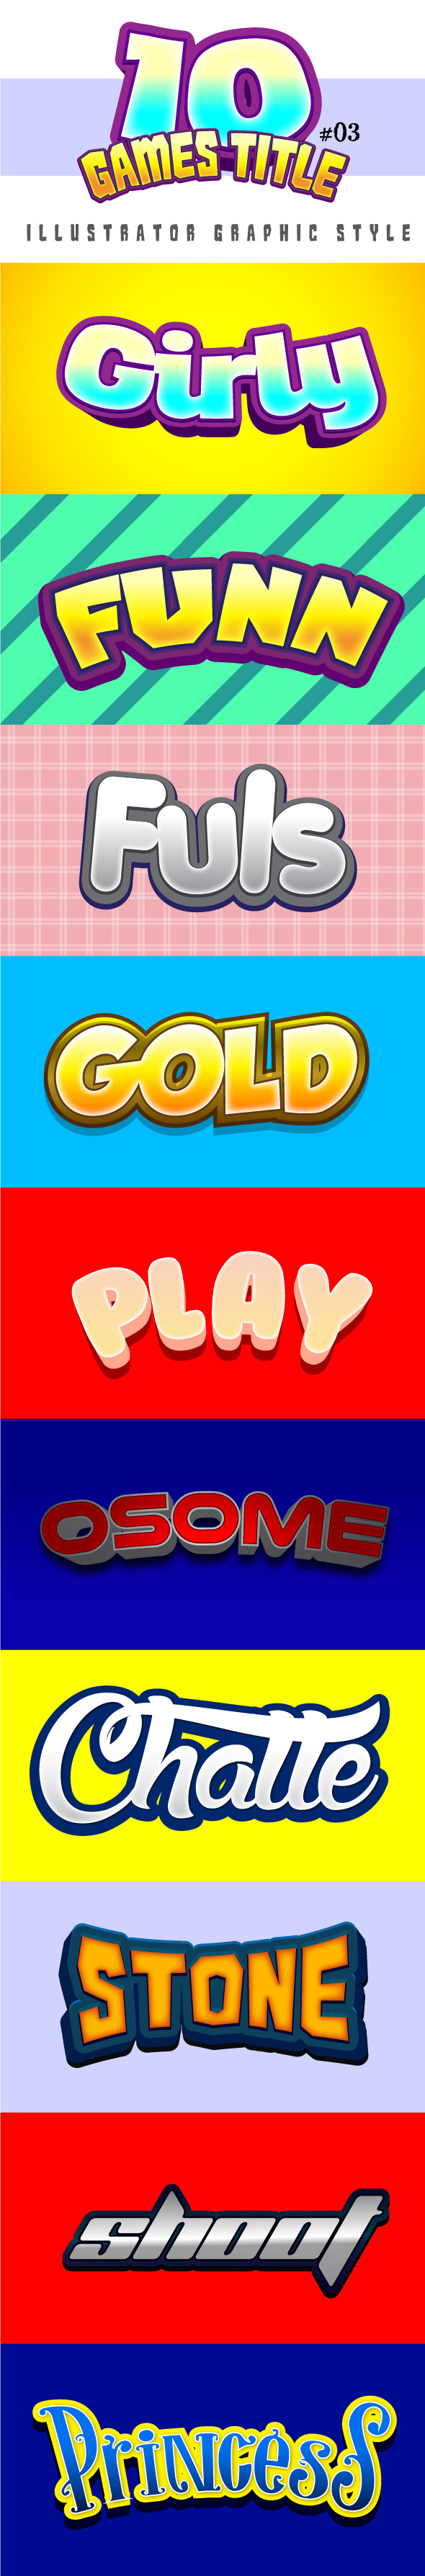 GraphicRiver 10 Games Title Graphic Style #03 8895484